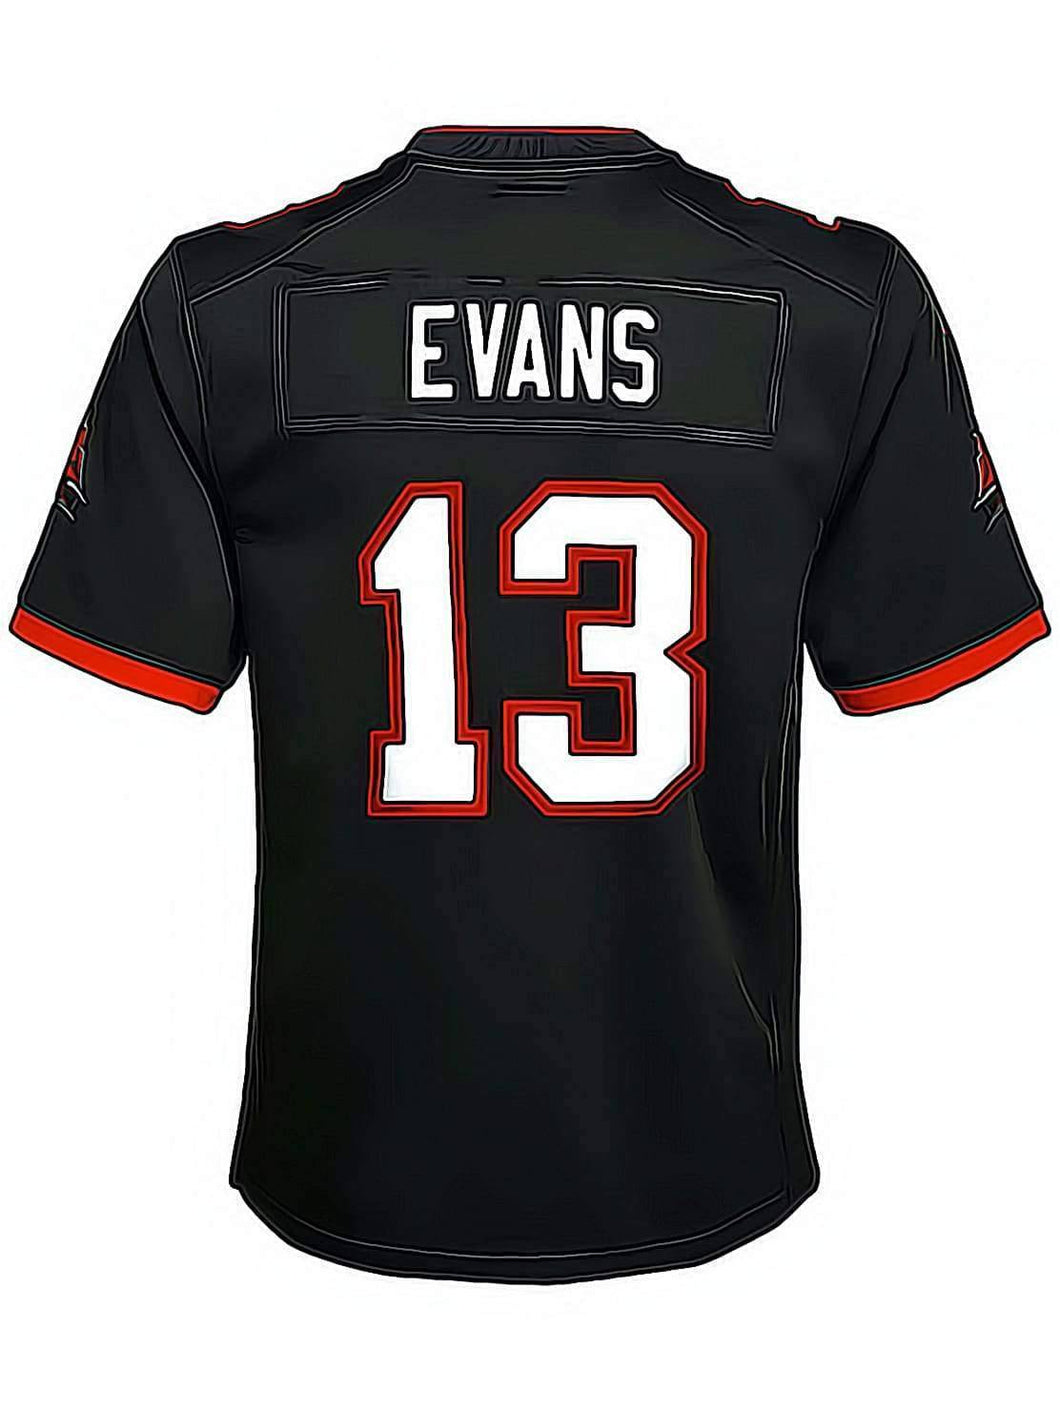 NFL Jersey Evans 13 Diamond Painting